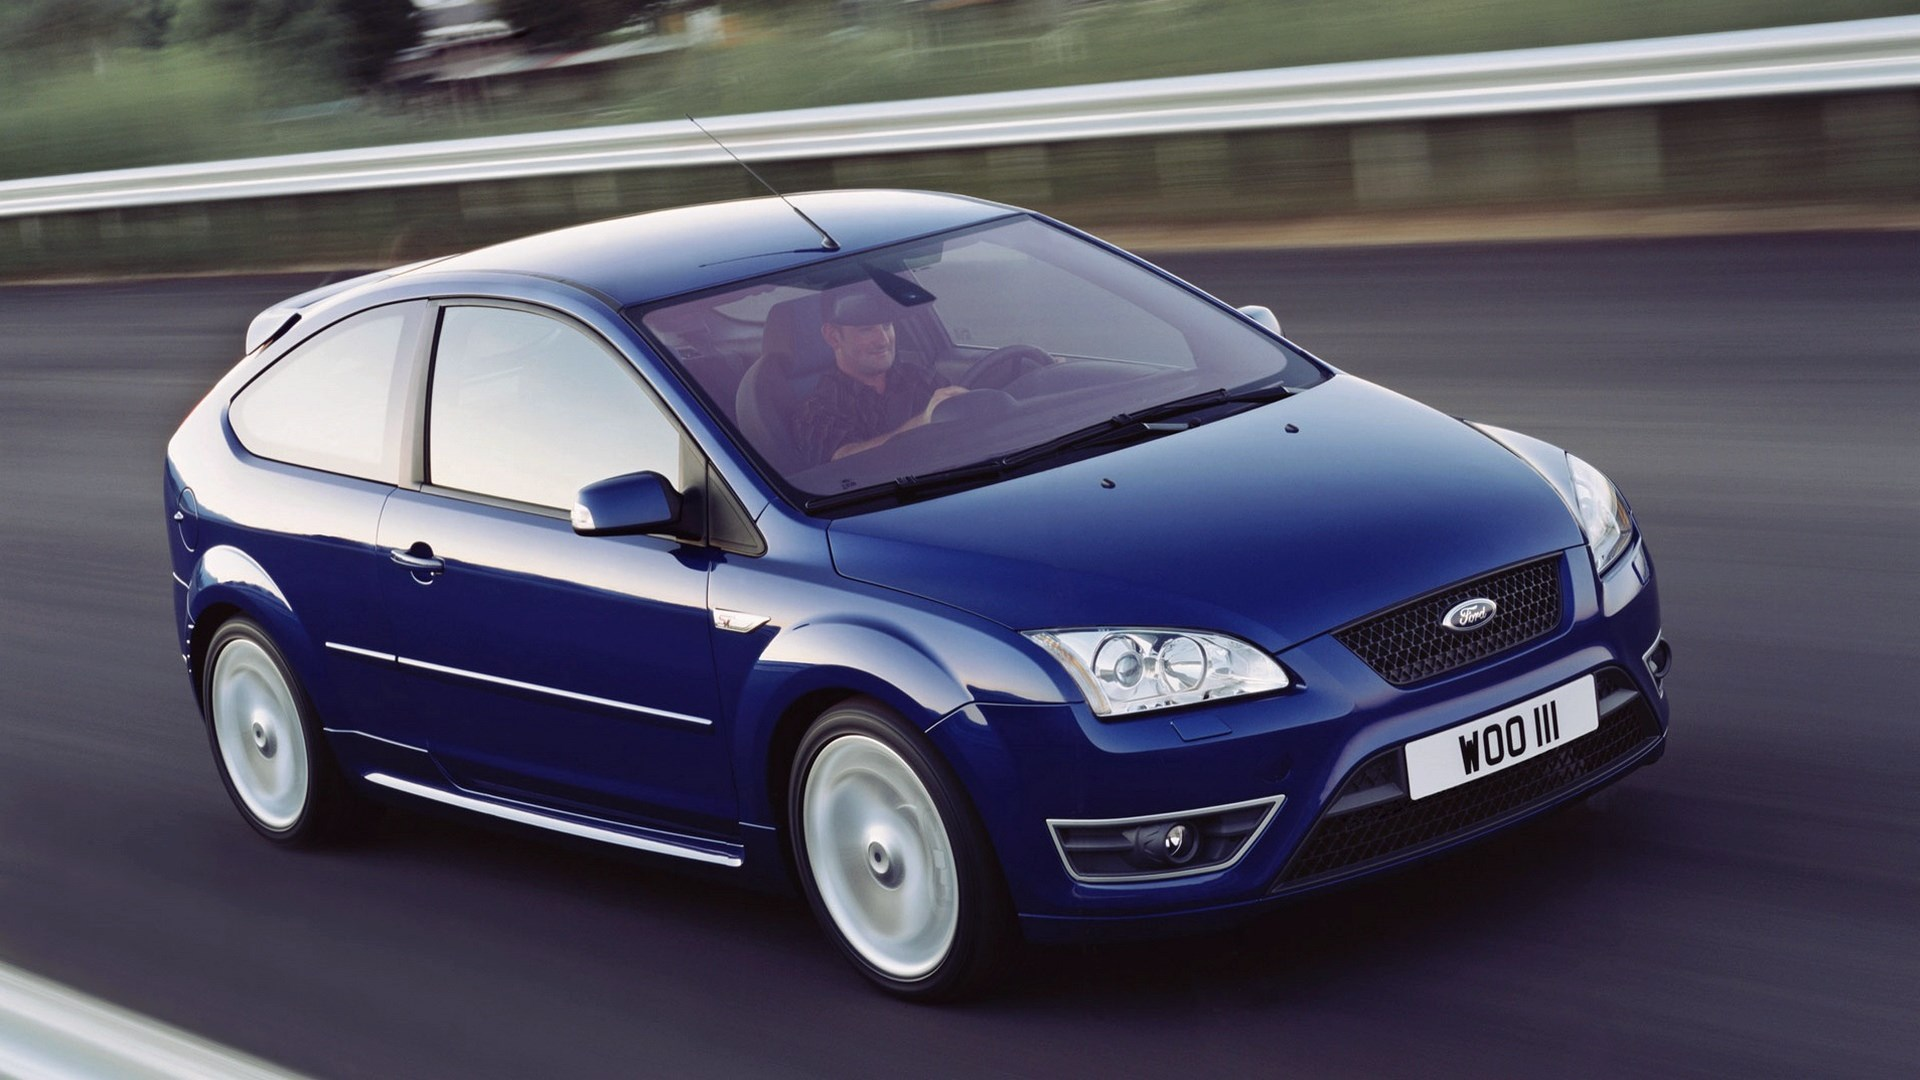 1920x1080-images-ford-focus-wallpaper-wp340947